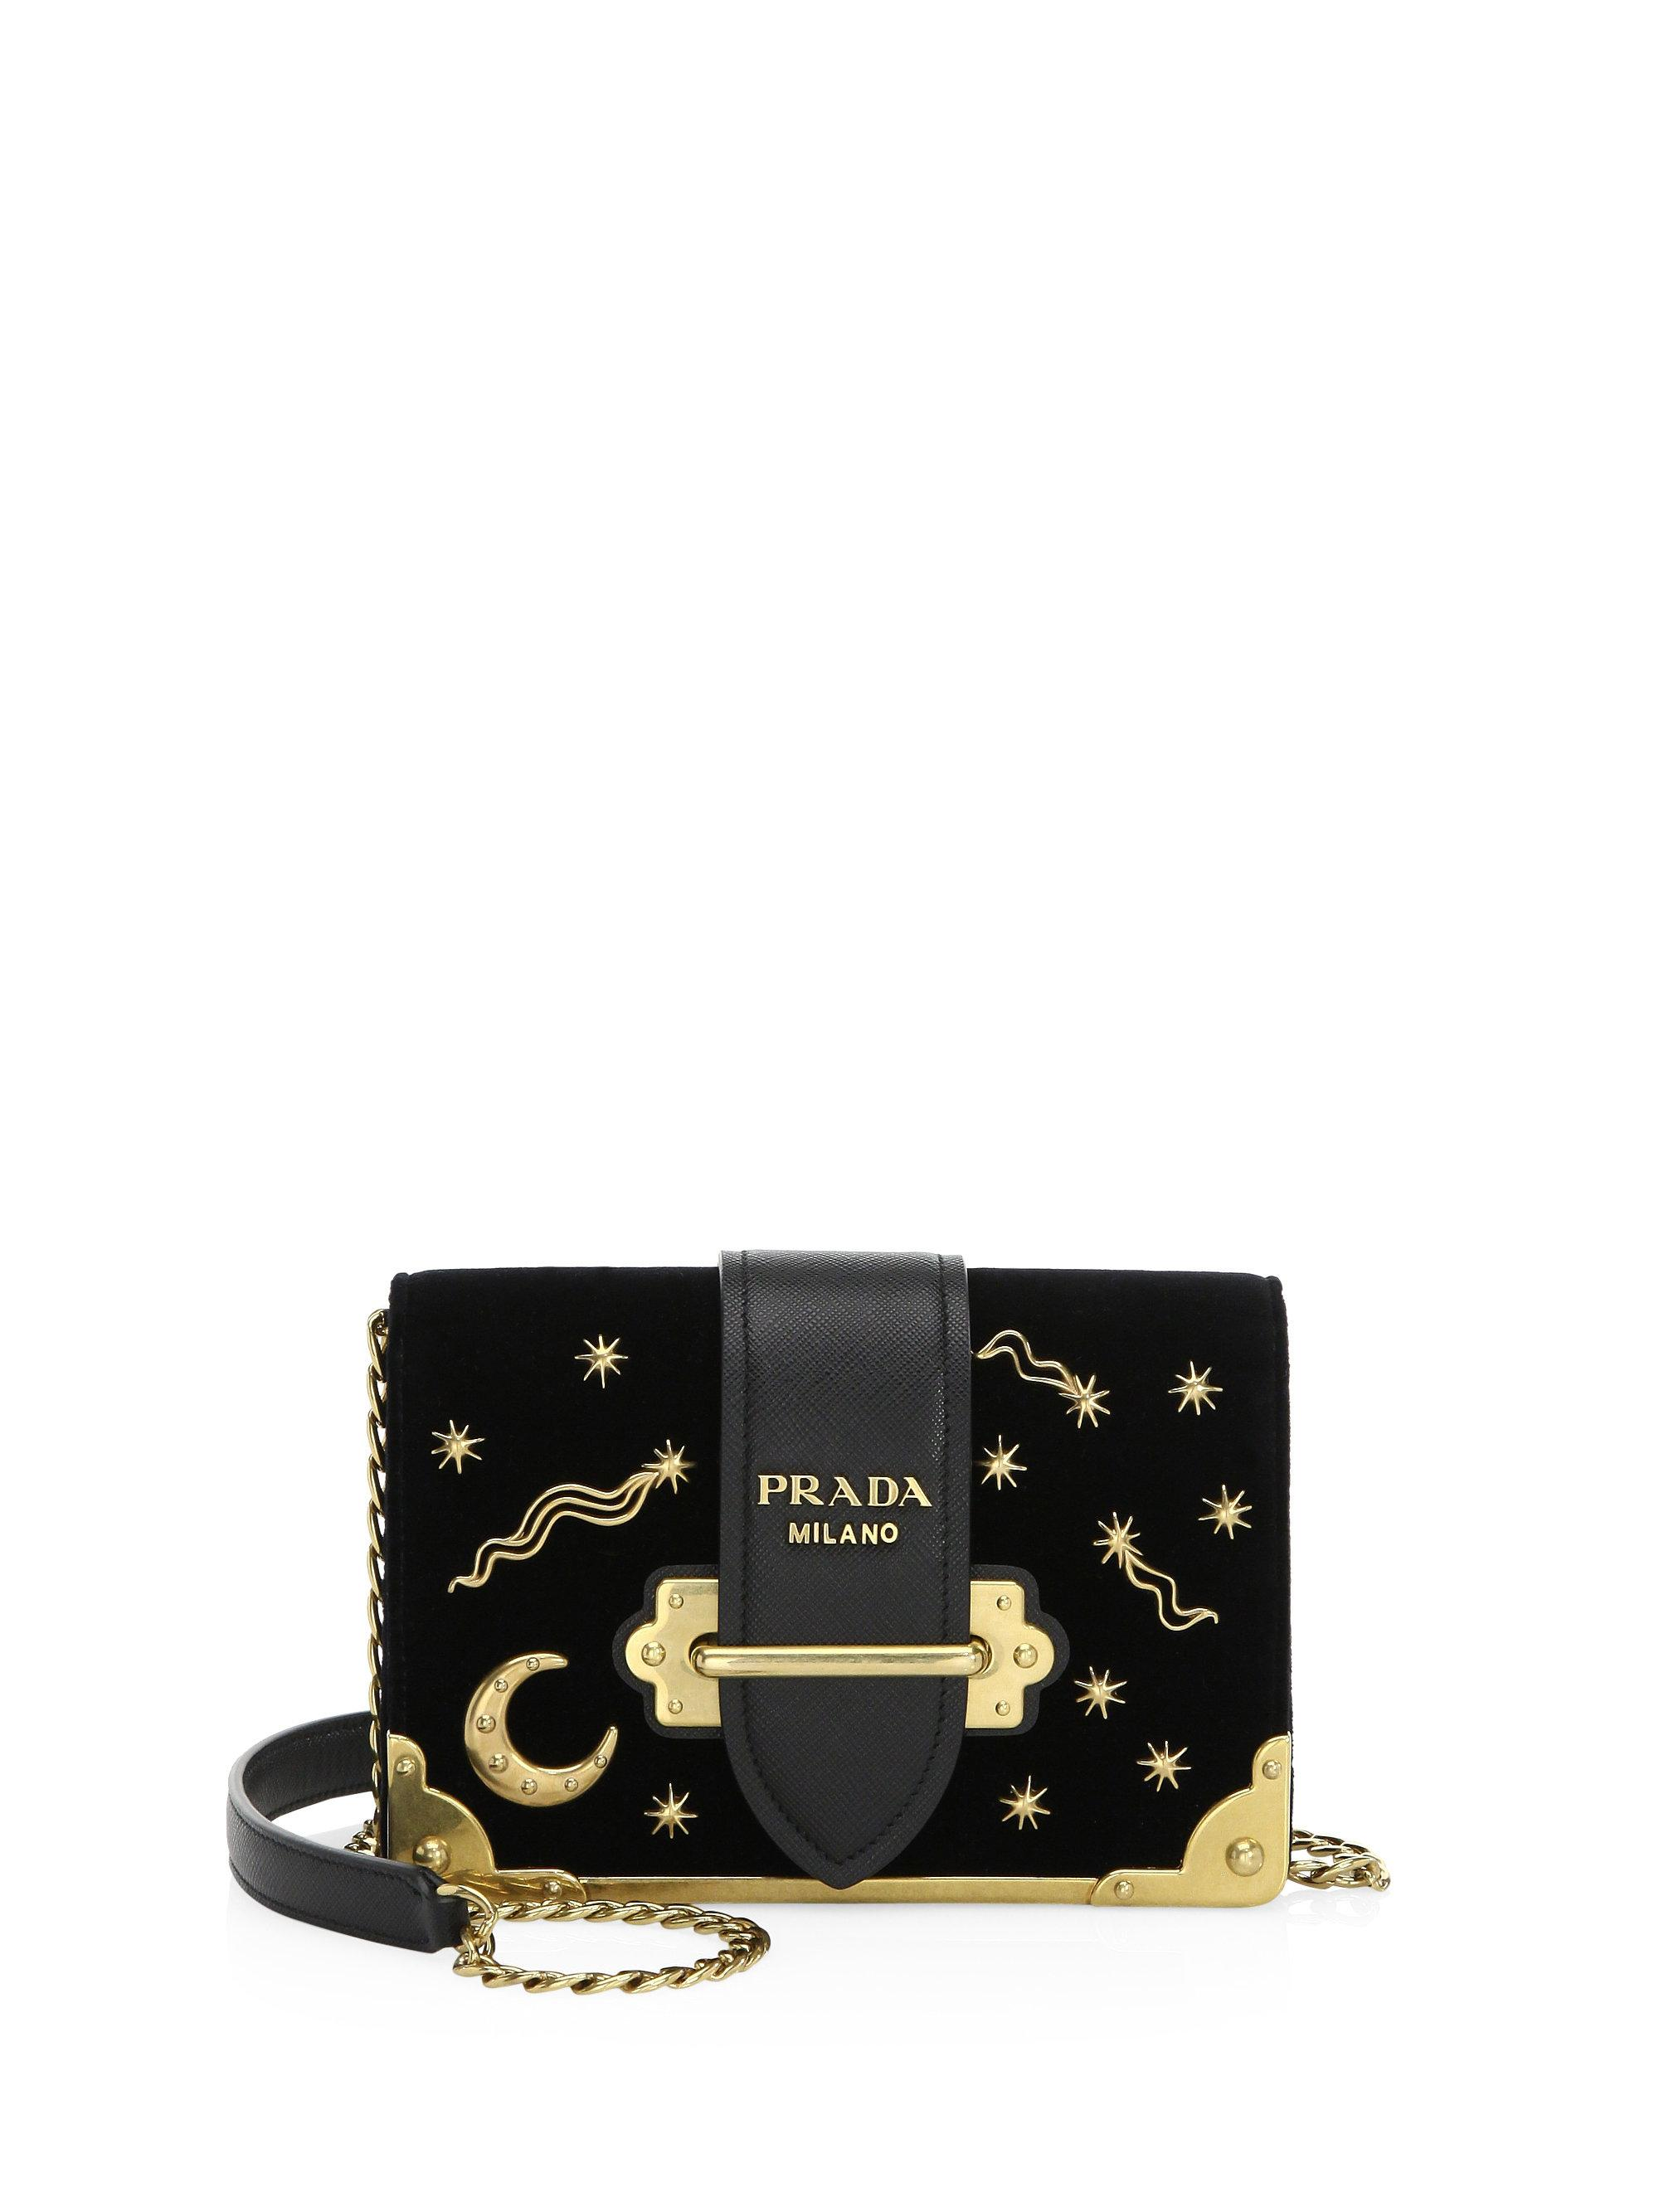 ce1b18ed8351 ... netherlands lyst prada cahier moon stars velvet crossbody bag in black  aa037 2f572